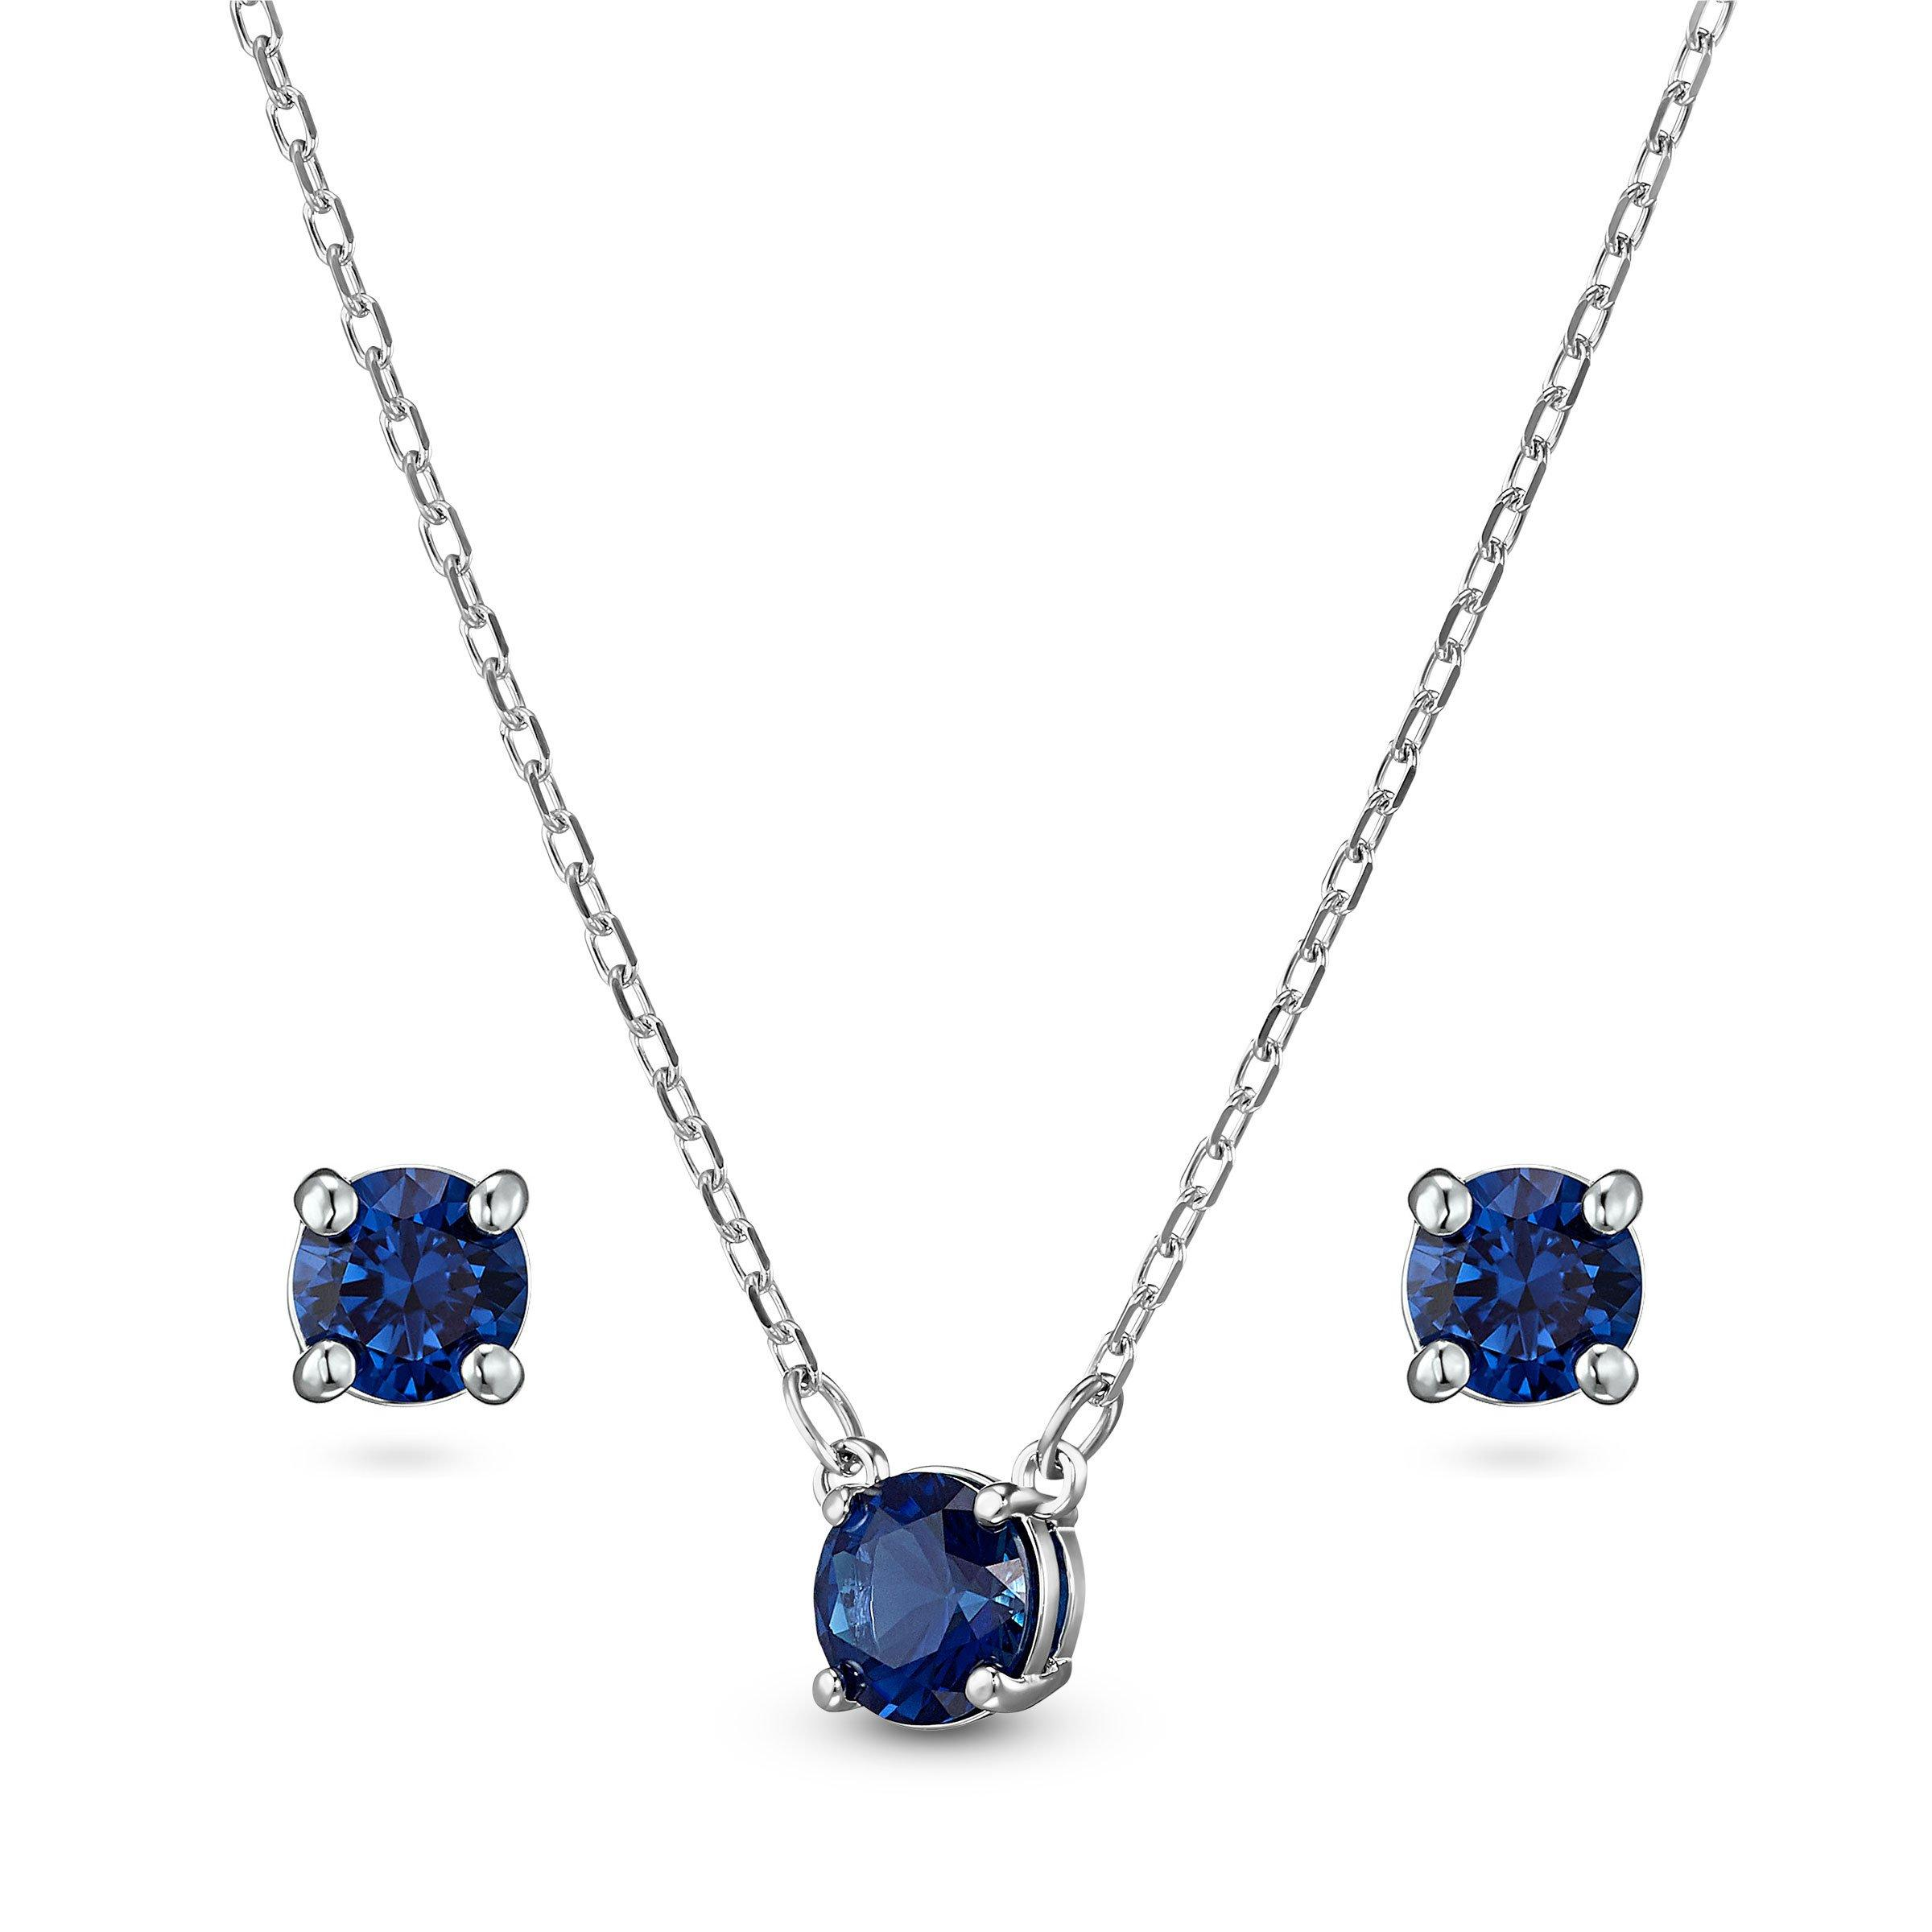 Swarovski Anniversary Necklace and Earrings Set